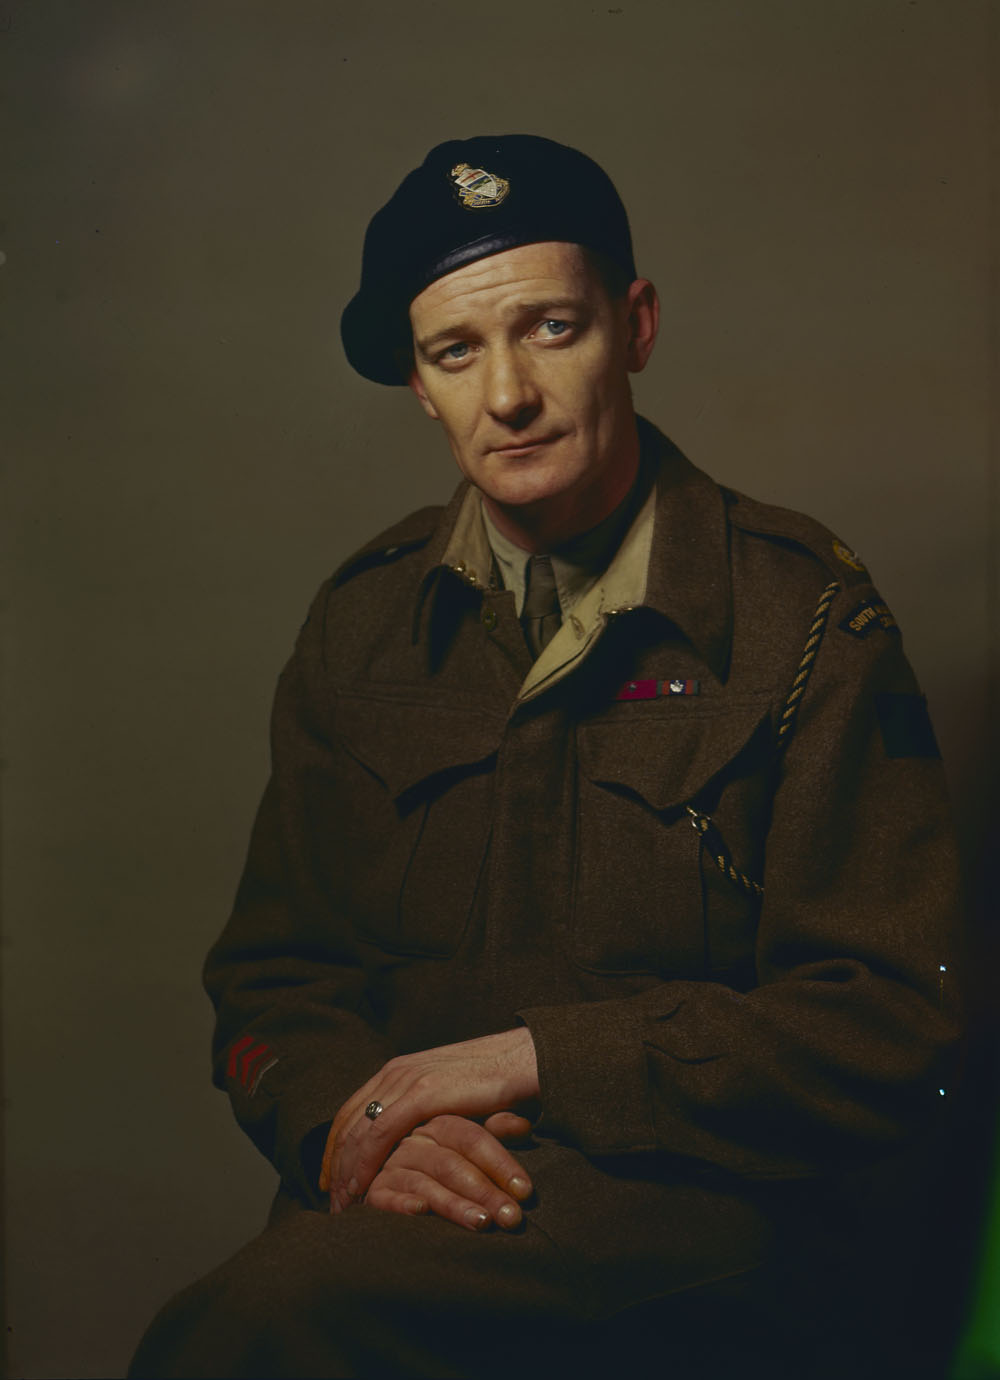 "This portrait captures Currie's calm, abiding demeanour. Asked his response to being awarded the Victoria Cross, he responded, ""Well, I was staggered. I sat down and had a cigarette and thought it over."" According to his son, ""He was always a cool guy. Absolutely no flapping, no matter what."" Currie's medals, including his VC (one of only 12 awarded to Canadians fighting in Canadian units in WWII), will be auctioned off on September 27, 2017 in London; opening bid is $500,000. (dnd, lac, mikan   4233304  )"